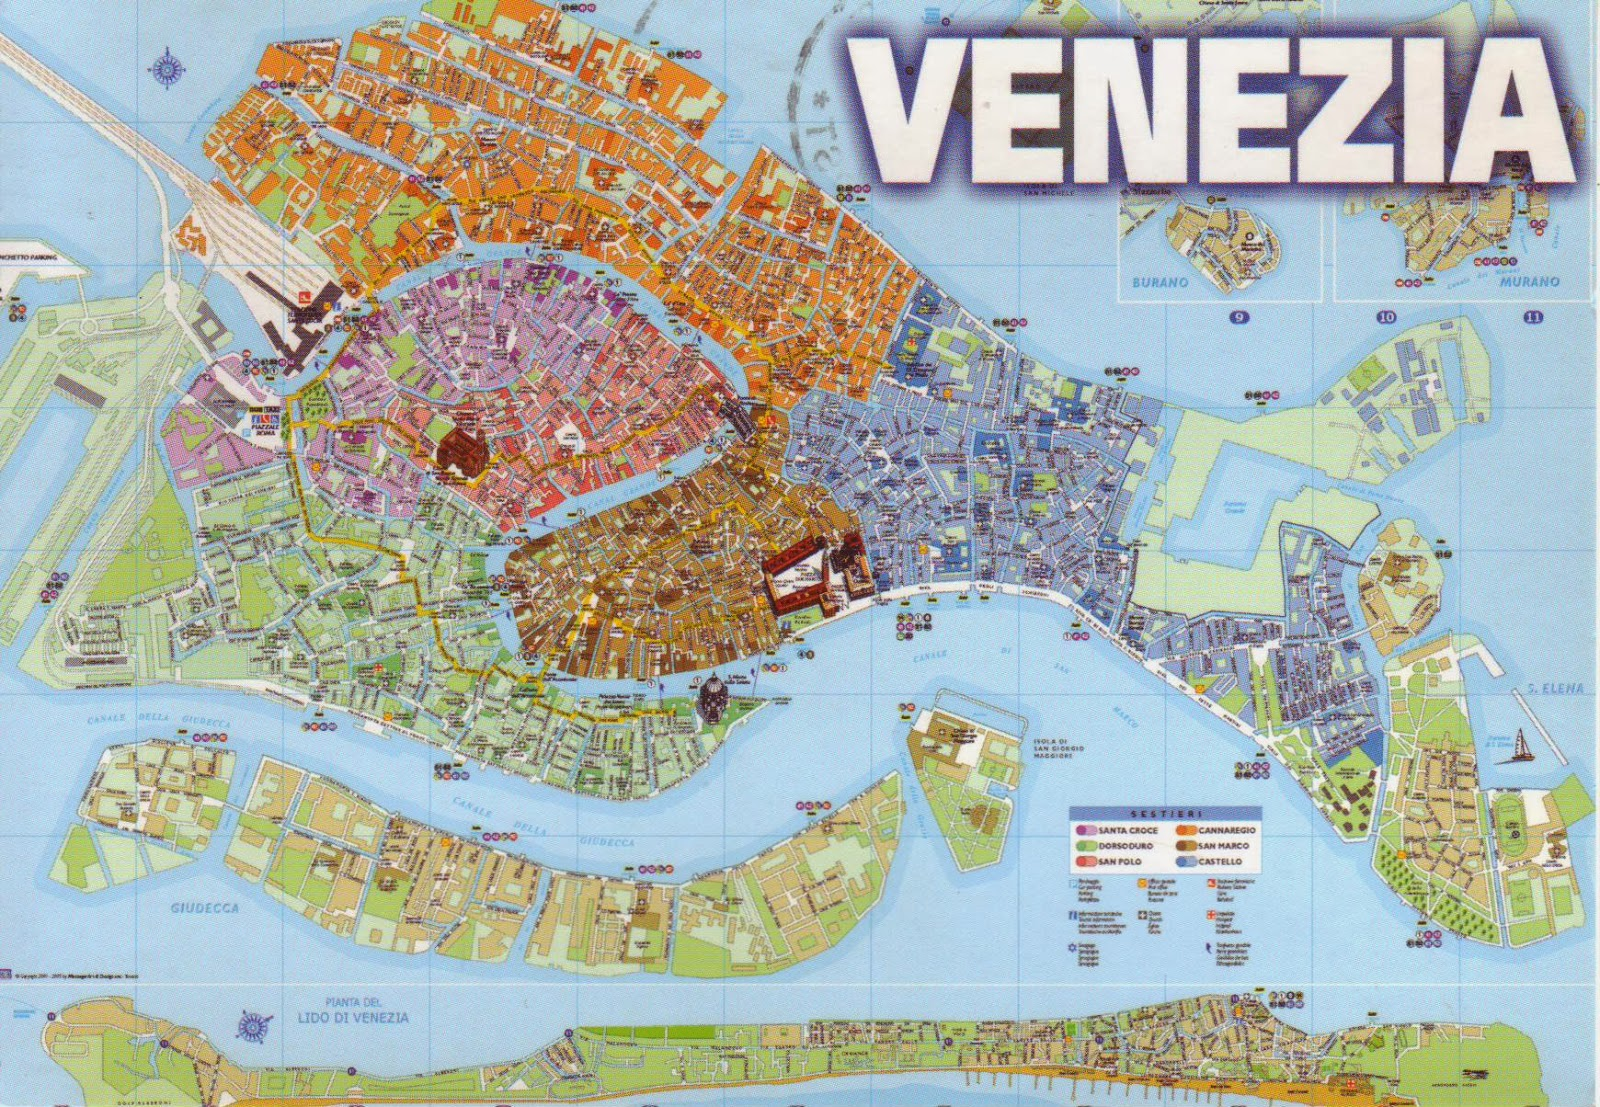 Map Of Italy Venice.The World In Postcards Sabine S Blog Venice Map Italy